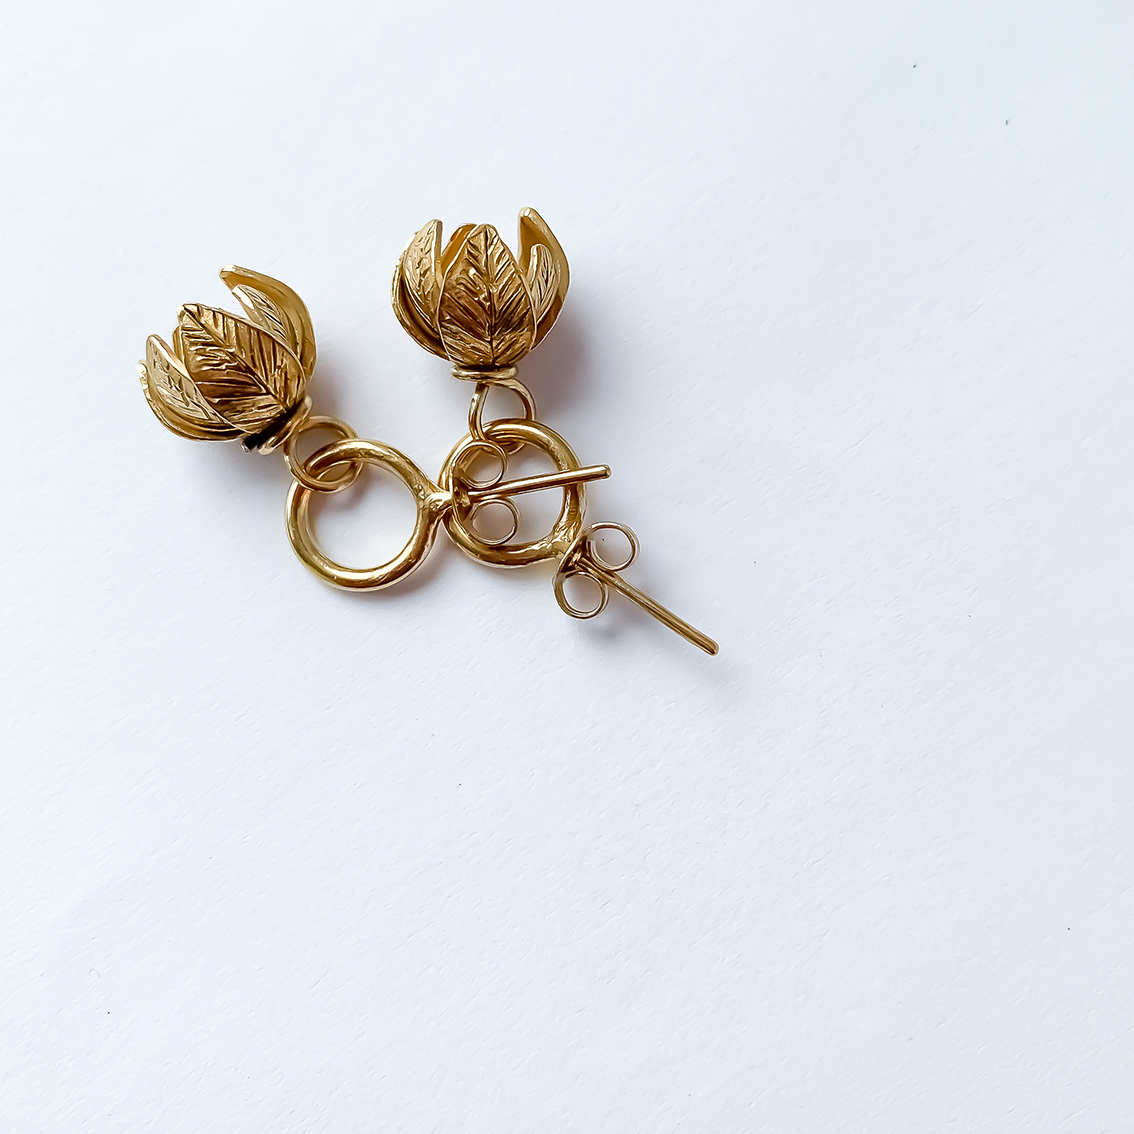 Abstract Circle Earrings with Flower Charm | Studs | 18ct Gold Plate